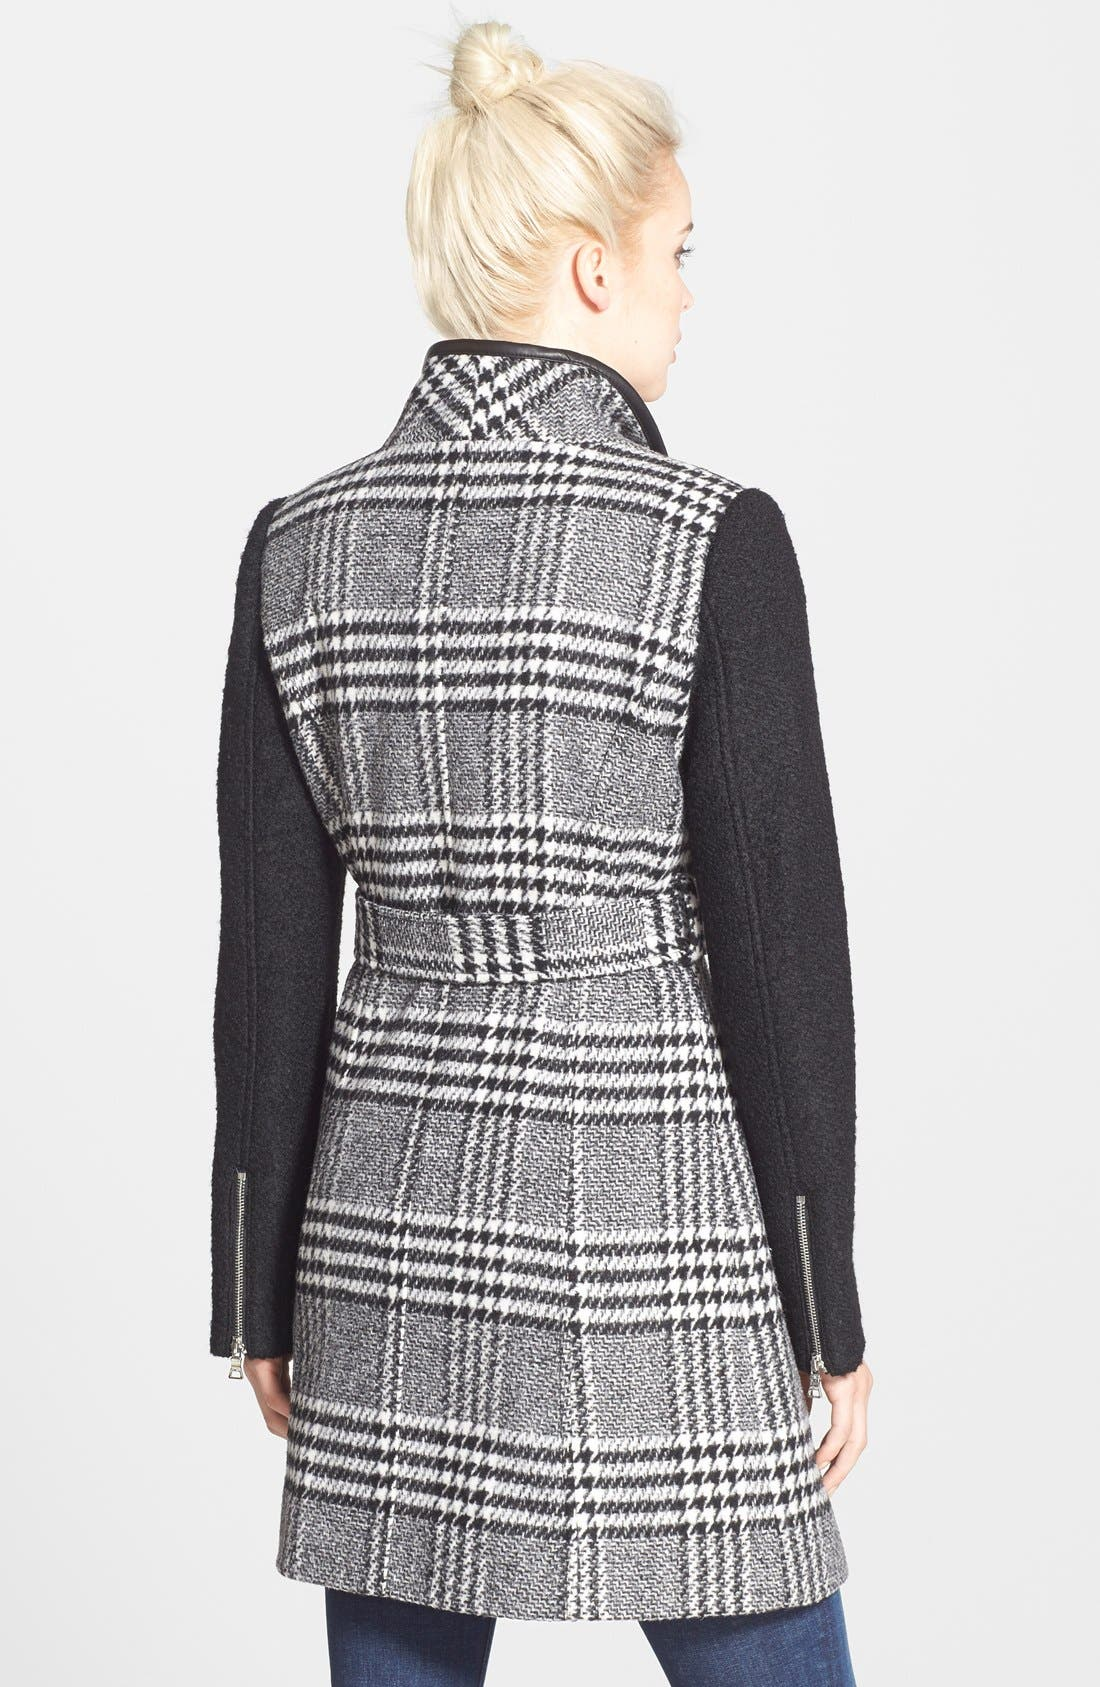 Bouclé Sleeve Plaid Wrap Coat,                             Alternate thumbnail 4, color,                             011